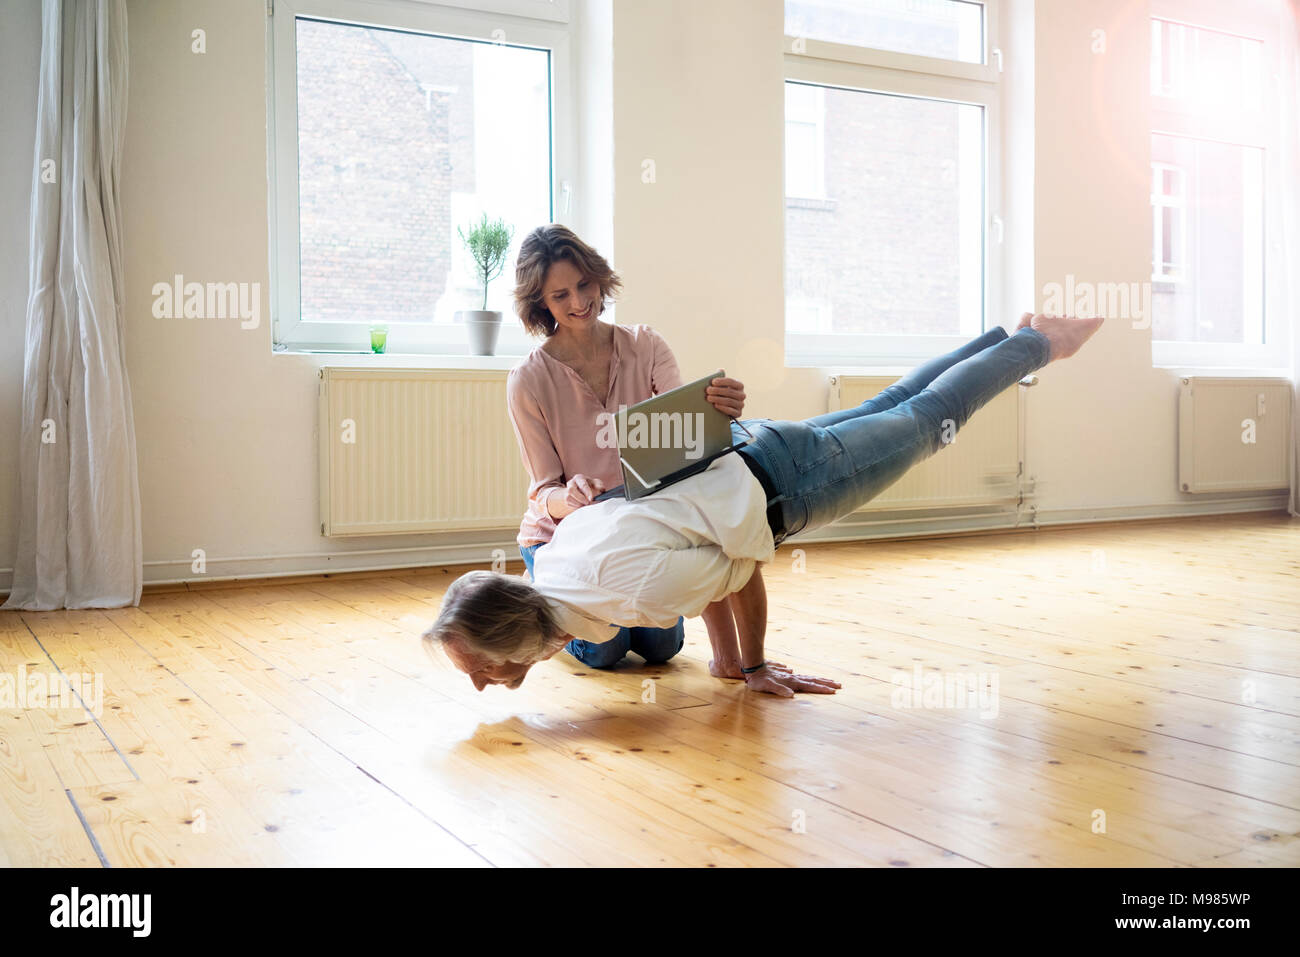 Mature woman using tablet on back of man doing a handstand - Stock Image